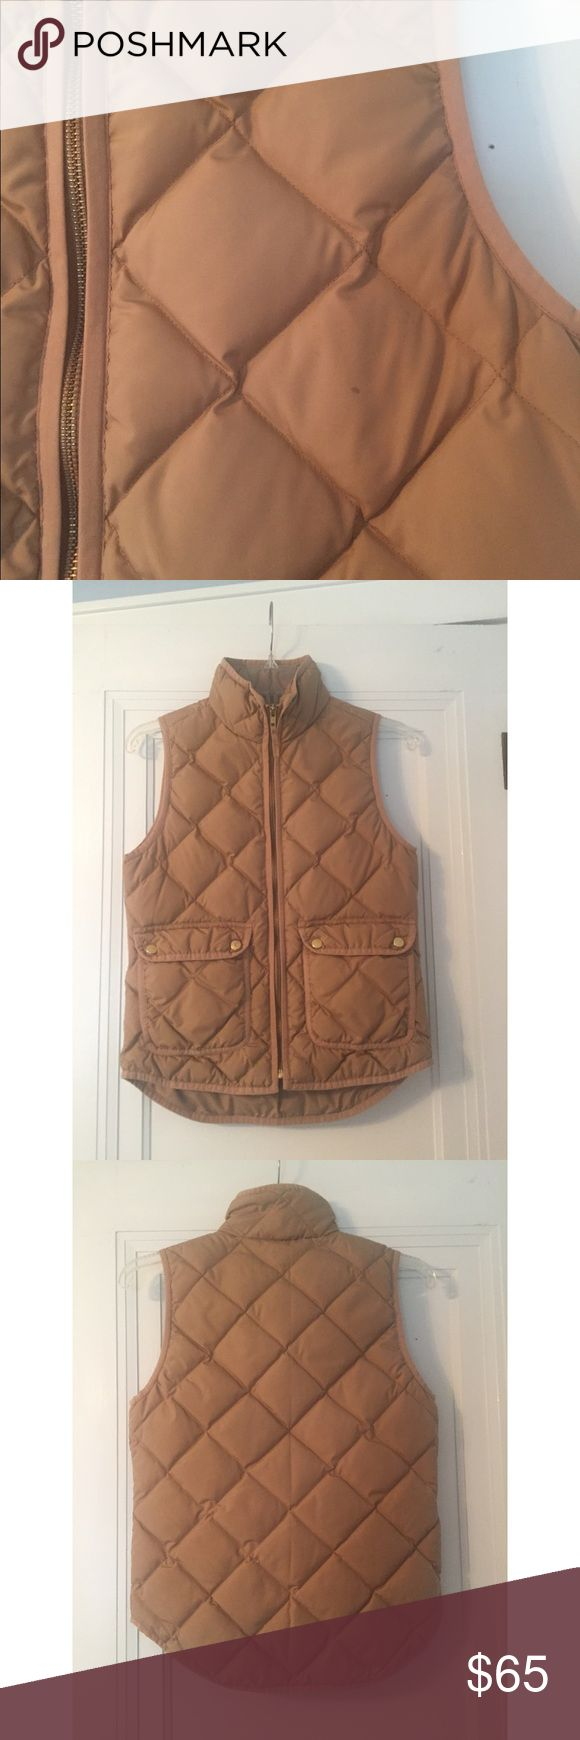 HTF GUC J. Crew (retail) Quilted Excursion Vest I saw GUC only because of the small spot in the last picture. It hasn't been dry cleaned so likely removable and hardly noticeable. It is very difficult to find this color because J. Crew hasn't re-released it like many of the other colors. J. Crew Jackets & Coats Vests